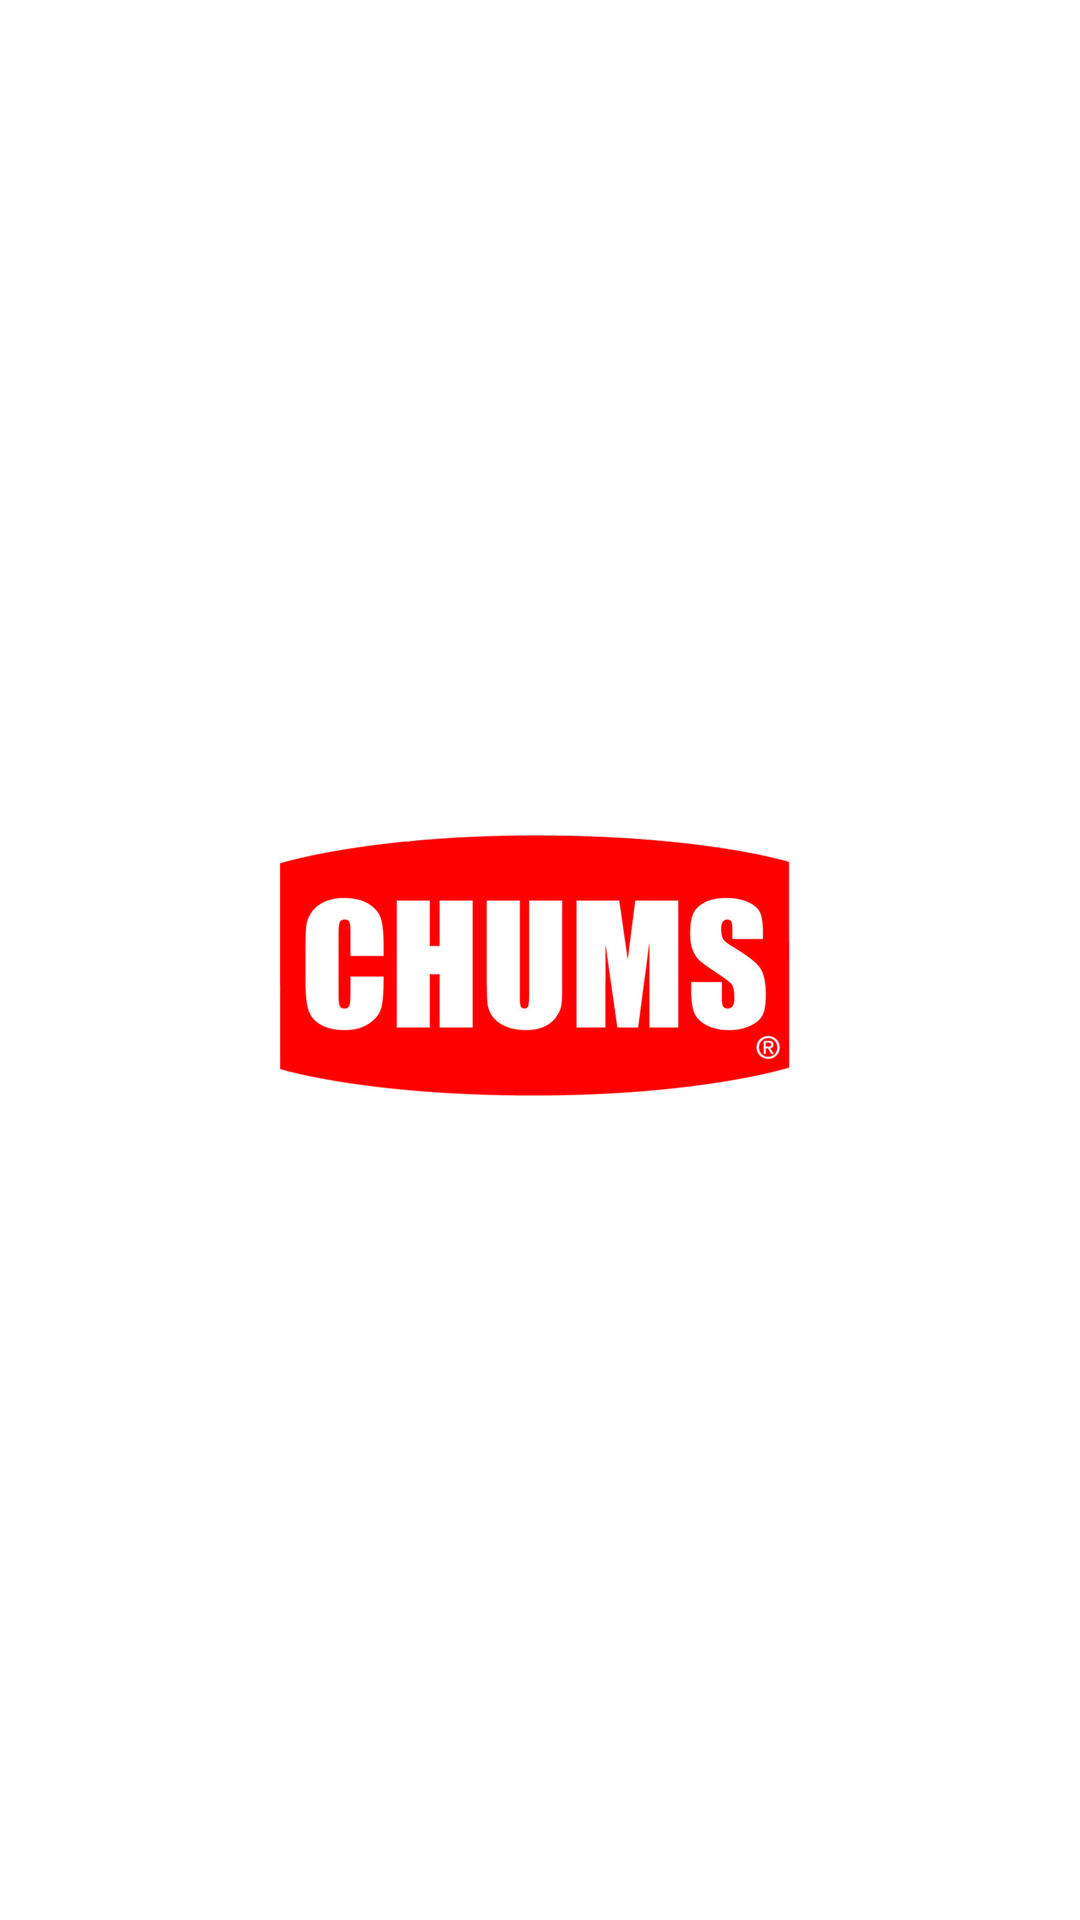 chums50 - 50 CHUMS HQ Smartphone Wallpaper Collection